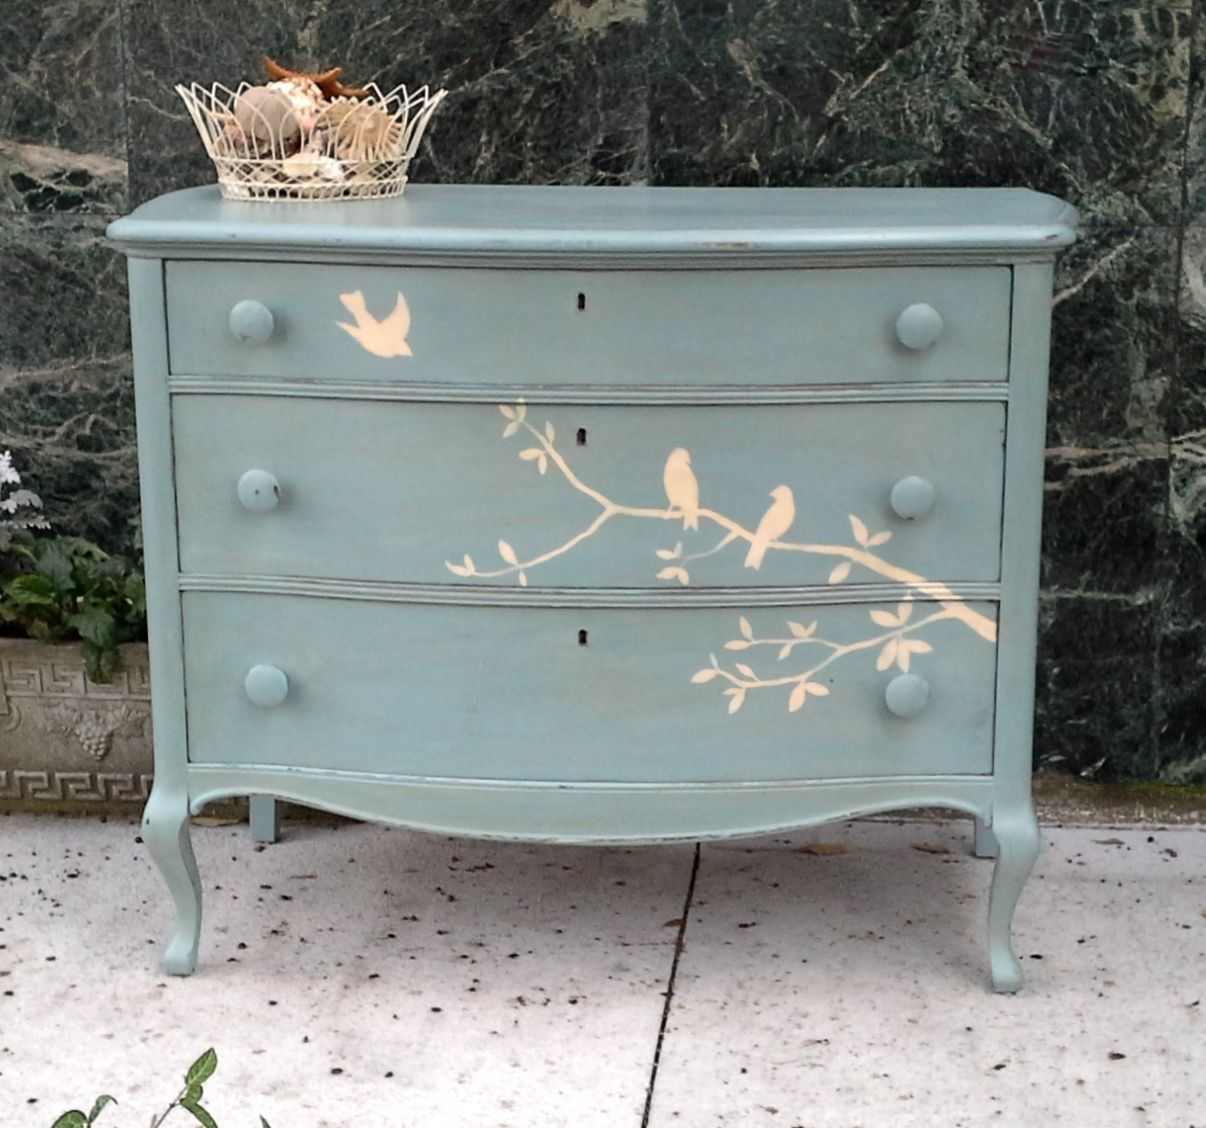 Beautiful Solid Wood Hand Painted Dresser With Birds Cottage Shabby Chic Inspired Shabby Chic Bedroom Furniture Shabby Chic Dresser Shabby Chic Painting